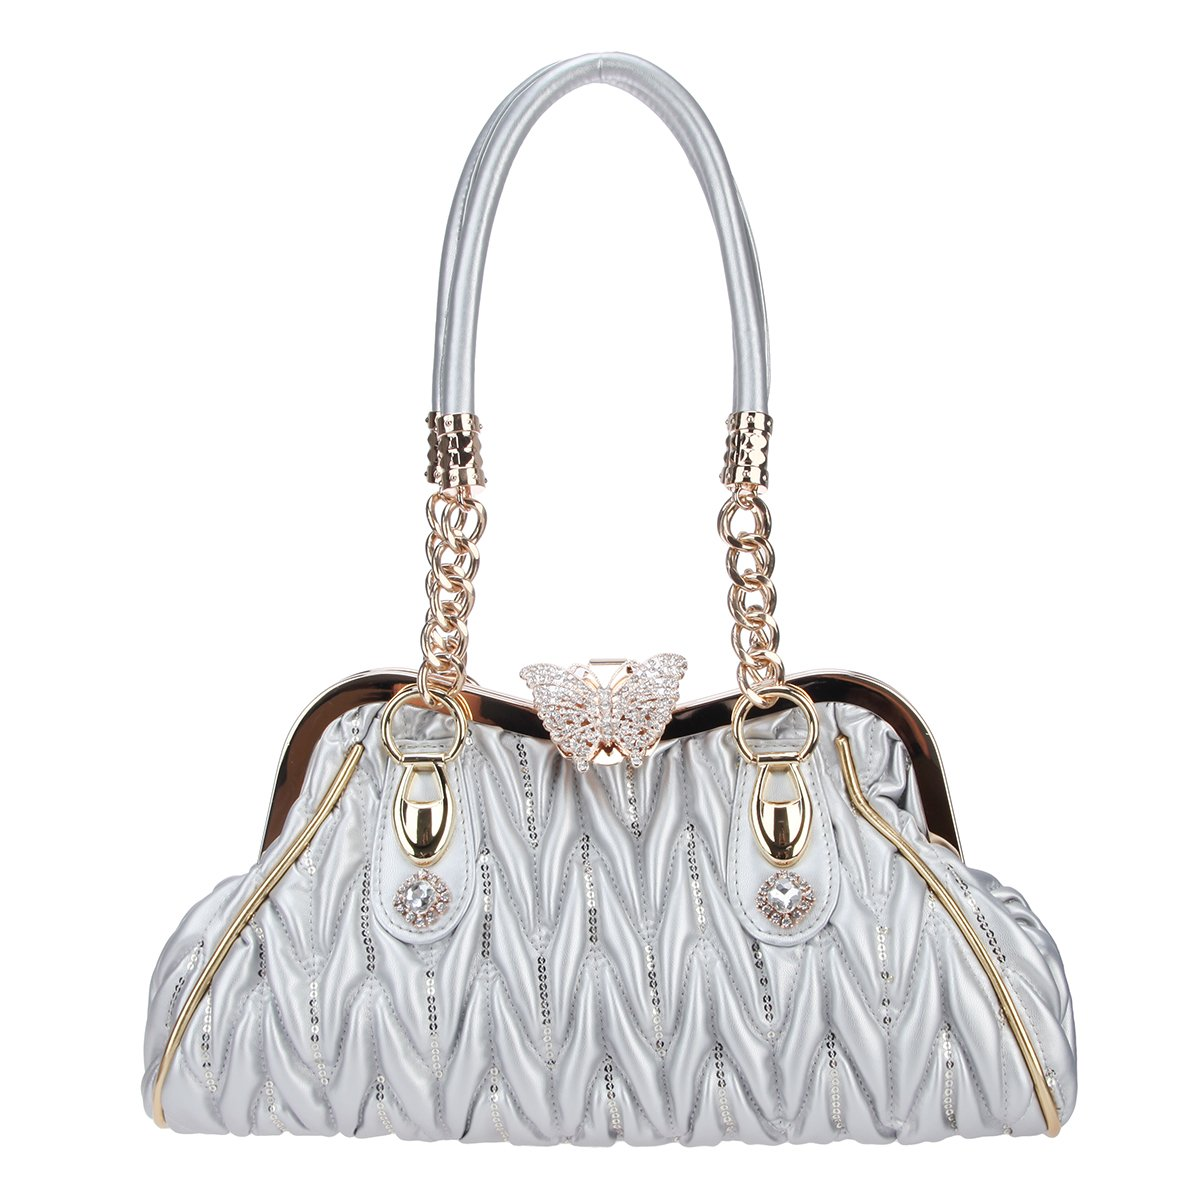 Fawziya Butterfly Shoulder Bags Crossover Bag For Women Handbags Pu Leather-Silver